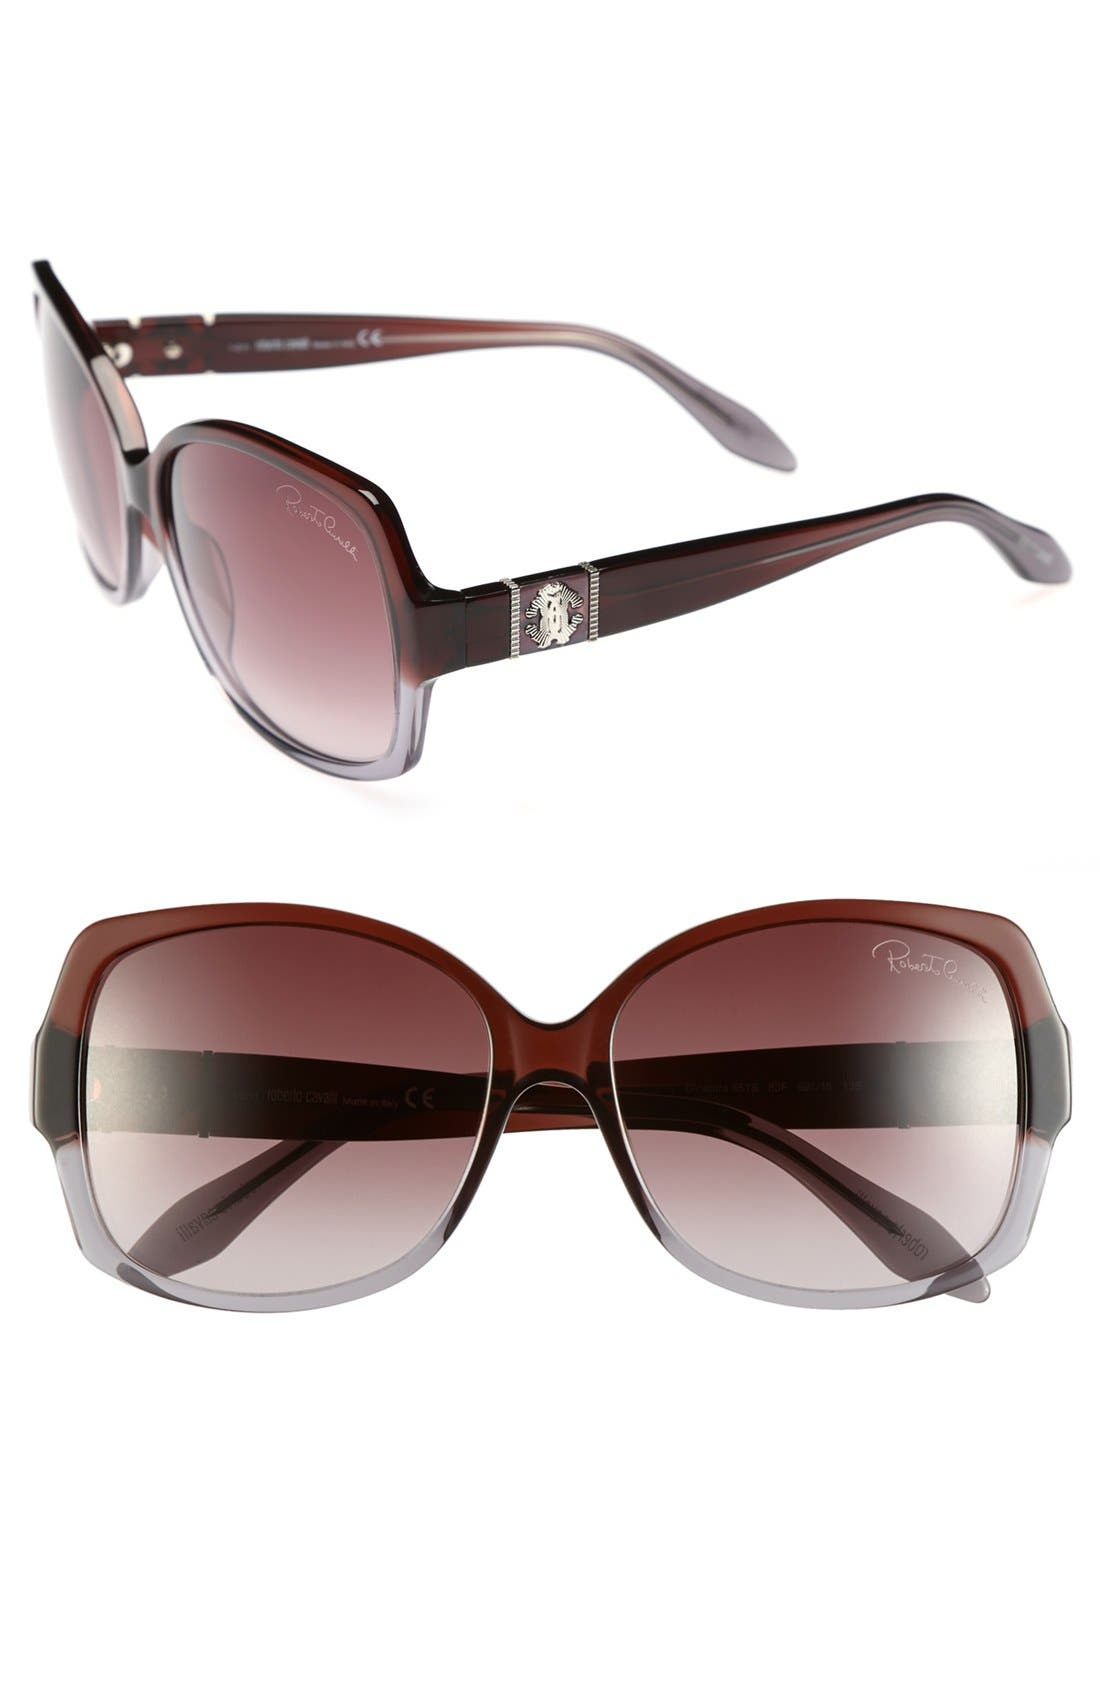 Main Image - Roberto Cavalli 59mm Oversized Sunglasses (Special Purchase)